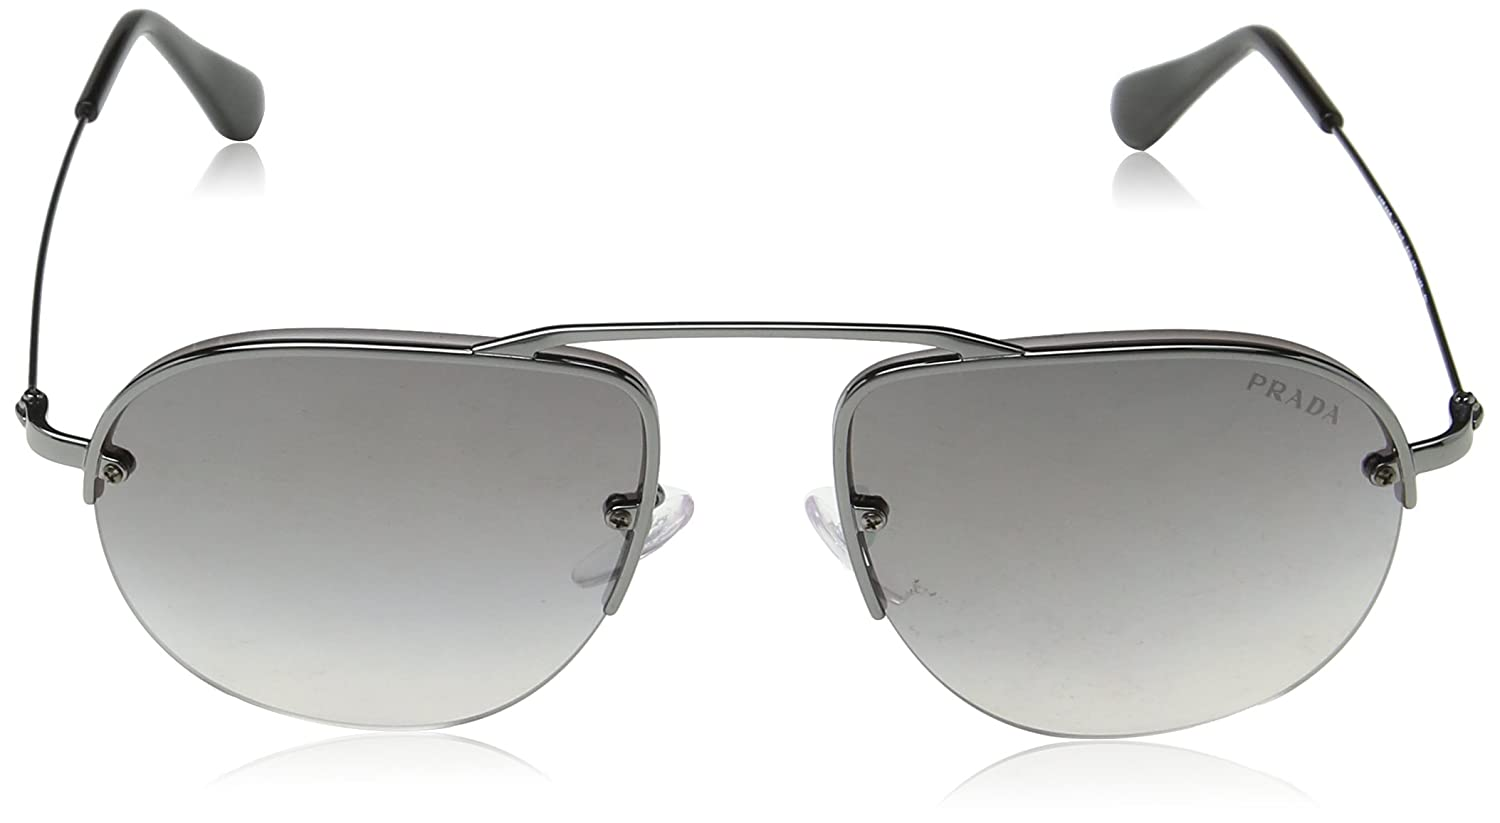 9c5bf5ecfae Amazon.com  Prada Women s Brow Bar Sunglasses